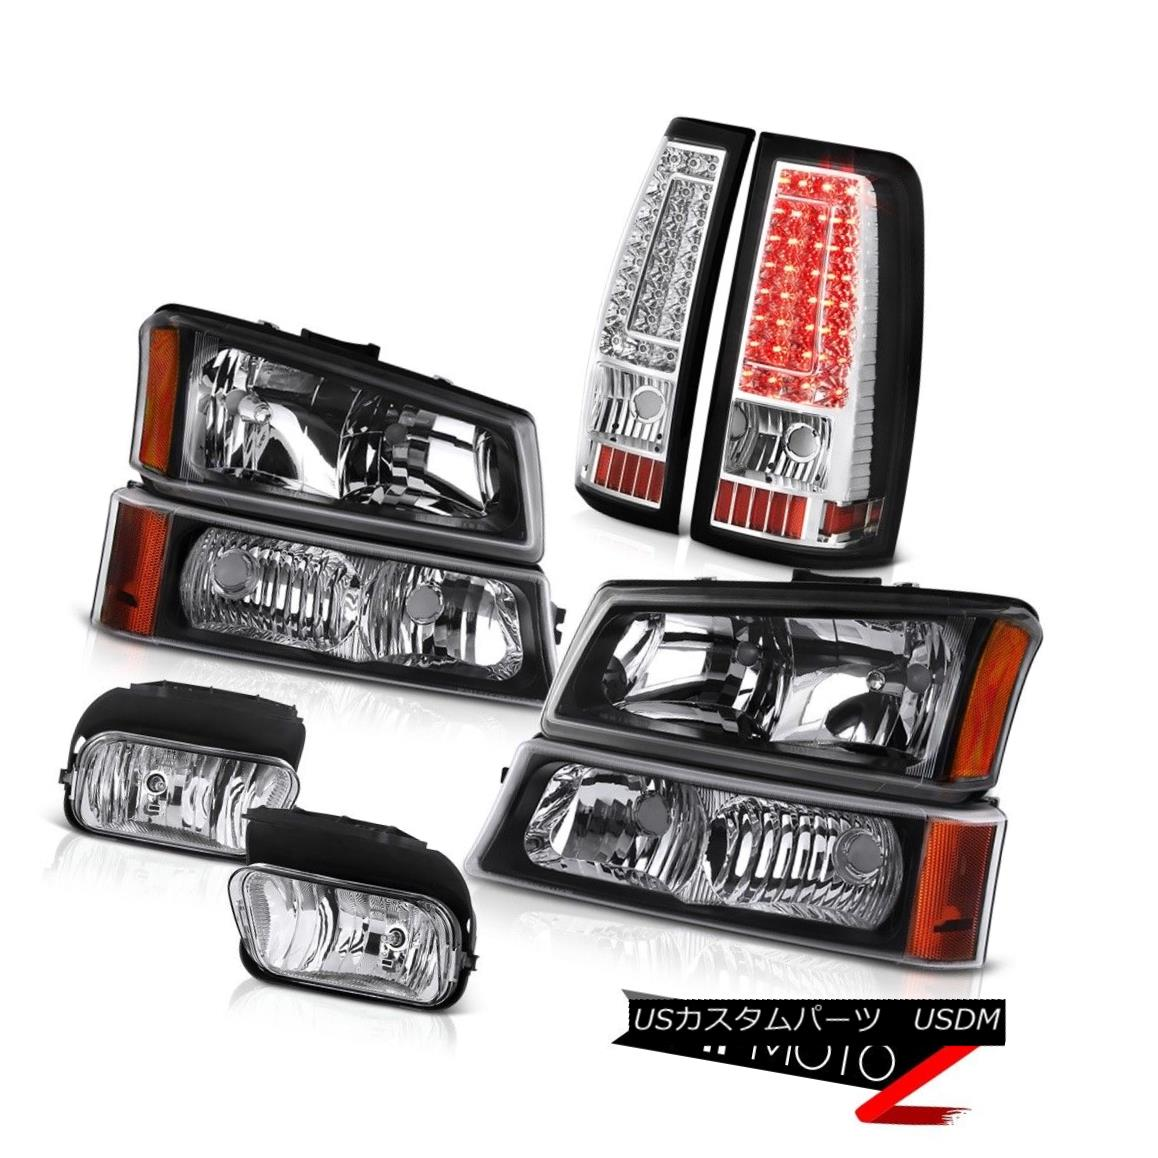 テールライト 03 04 05 06 Silverado Chrome Foglamps Taillights Parking Lamp Headlamps LED SMD 03 04 05 06 Silverado Chrome FoglampsテールライトパーキングランプヘッドランプLED SMD